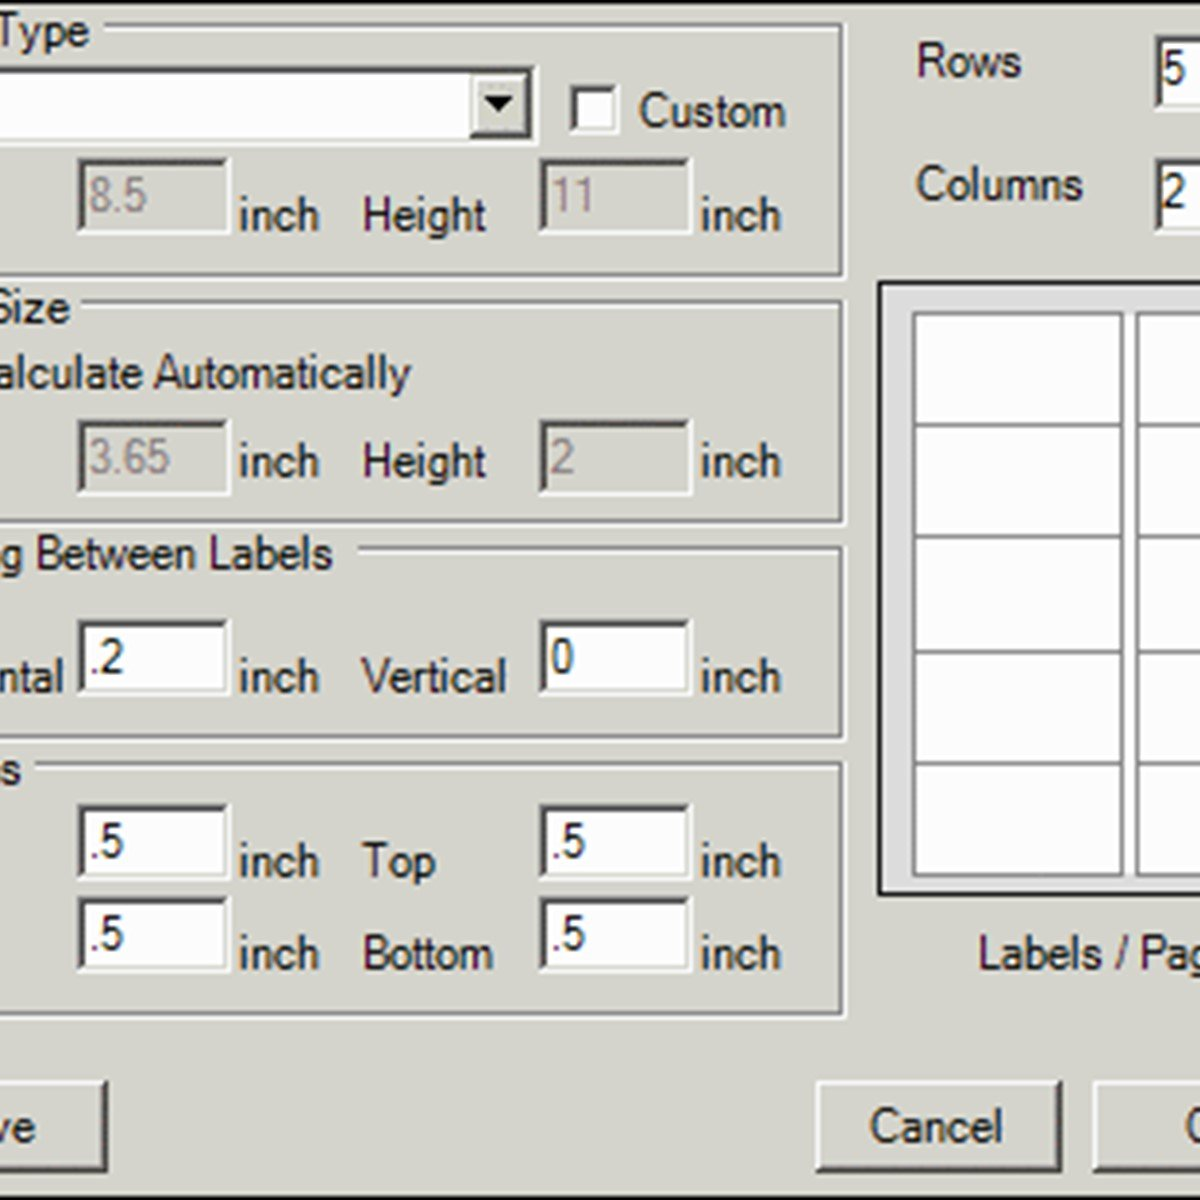 Free Barcode Label Design Application Alternatives and